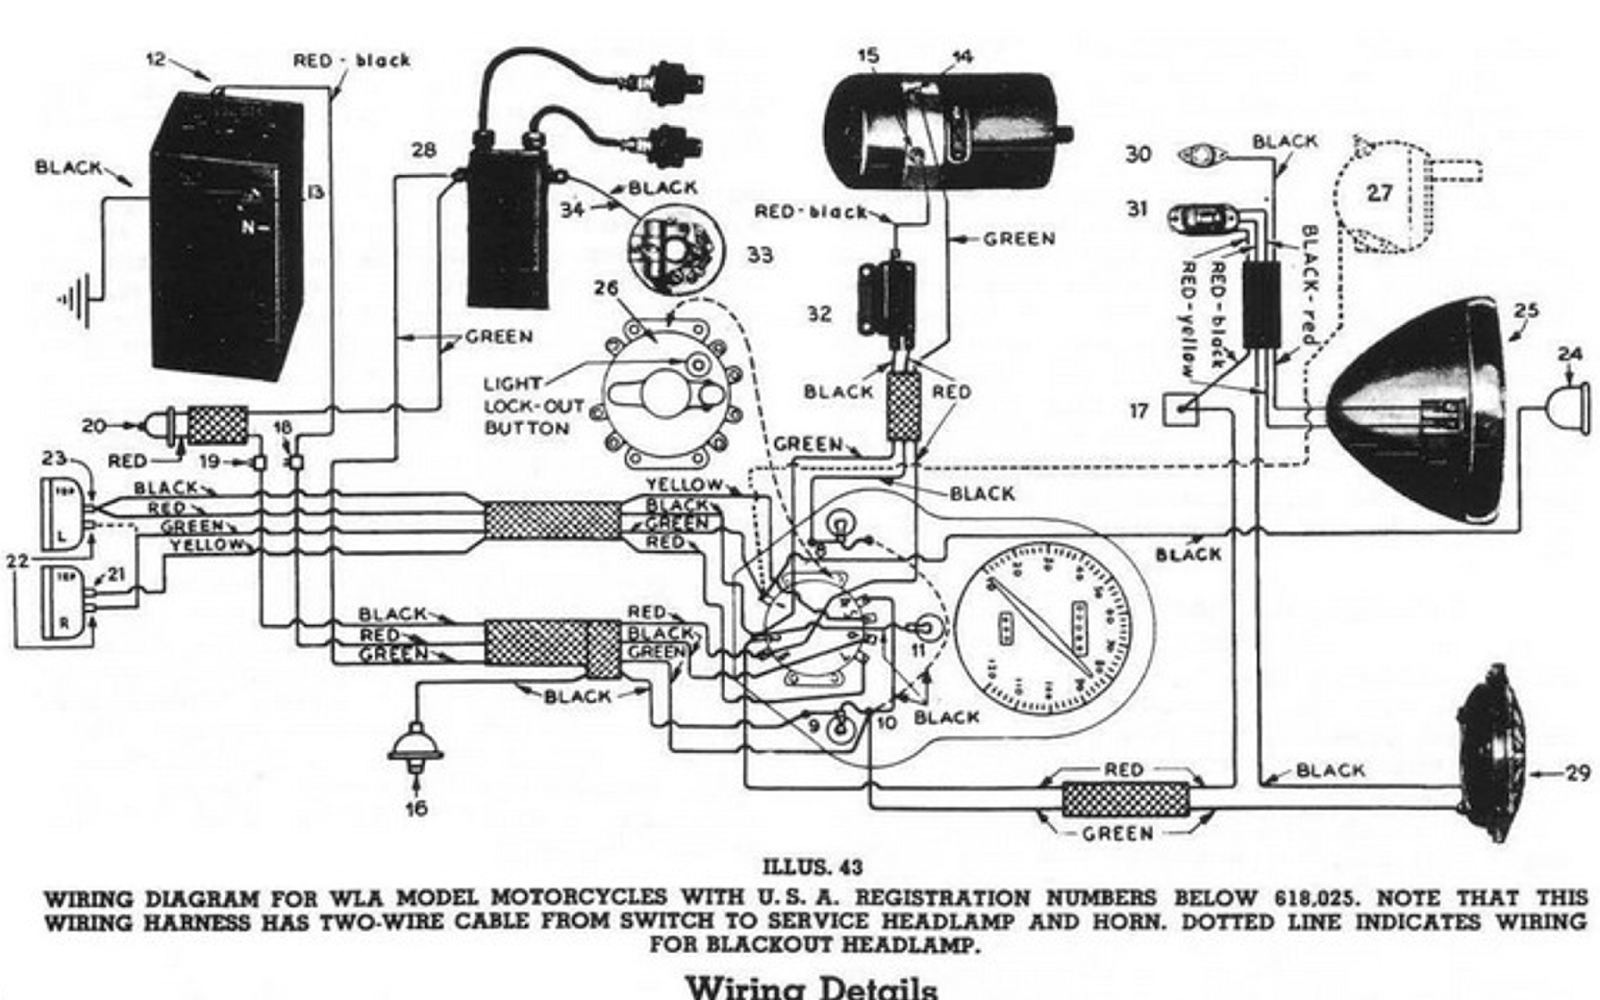 Harley Sportster Wiring Diagram from 3.bp.blogspot.com